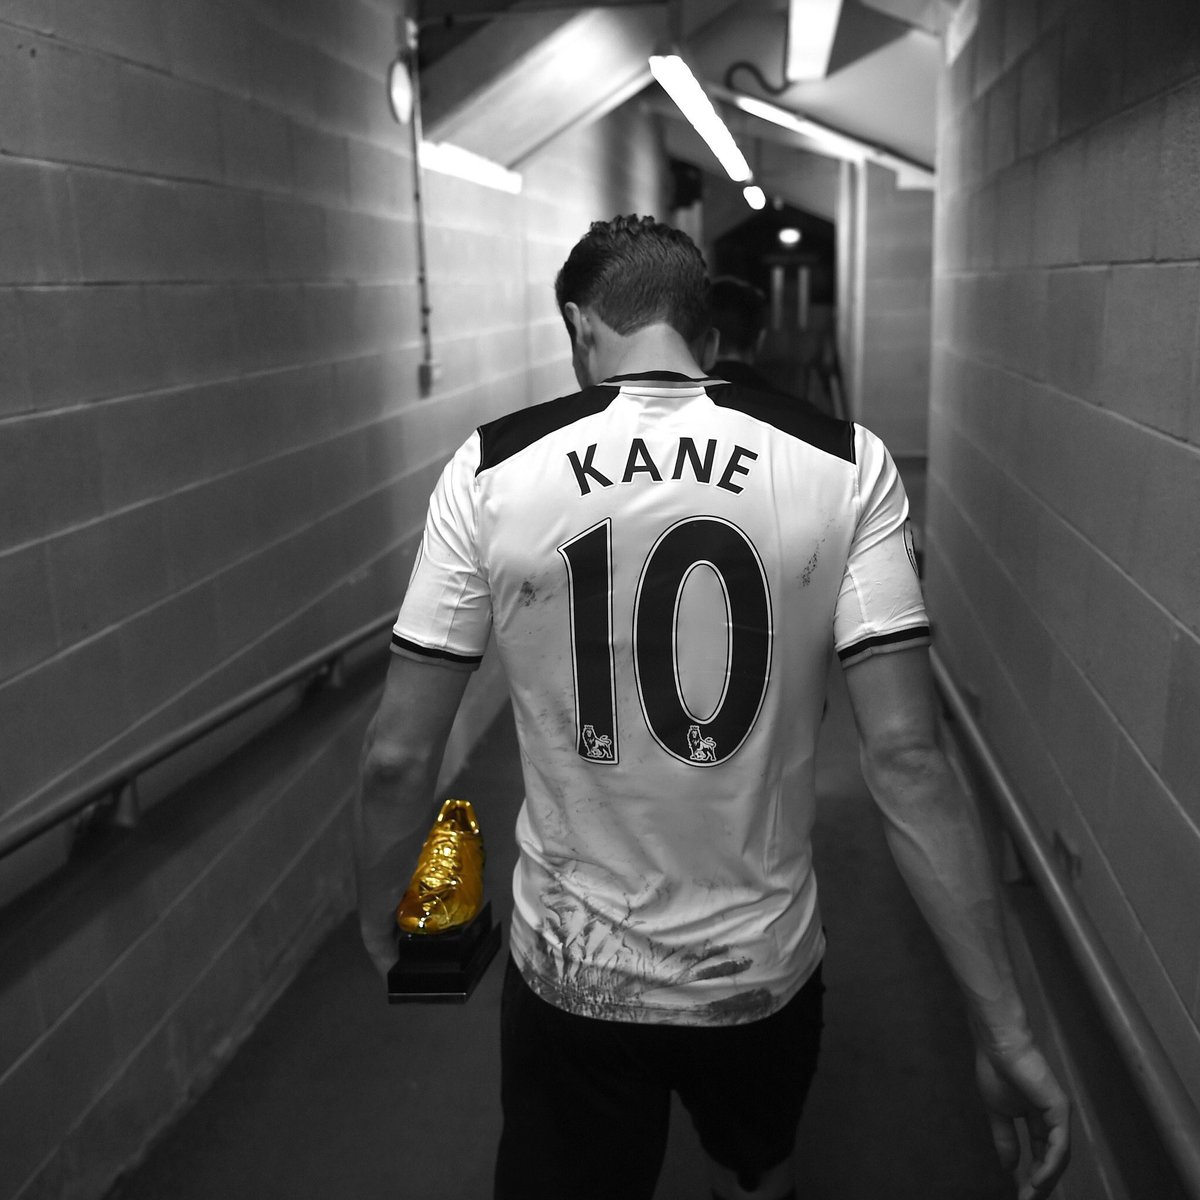 #Spooort1 🎙; @HKane his artistic value needs to be crowned championships, Mourinho's tactic will not achieve this, #RealMadrid is ready for that, the trust between Pochettino and Kane is strong so he may go to Paris #TOTFUL